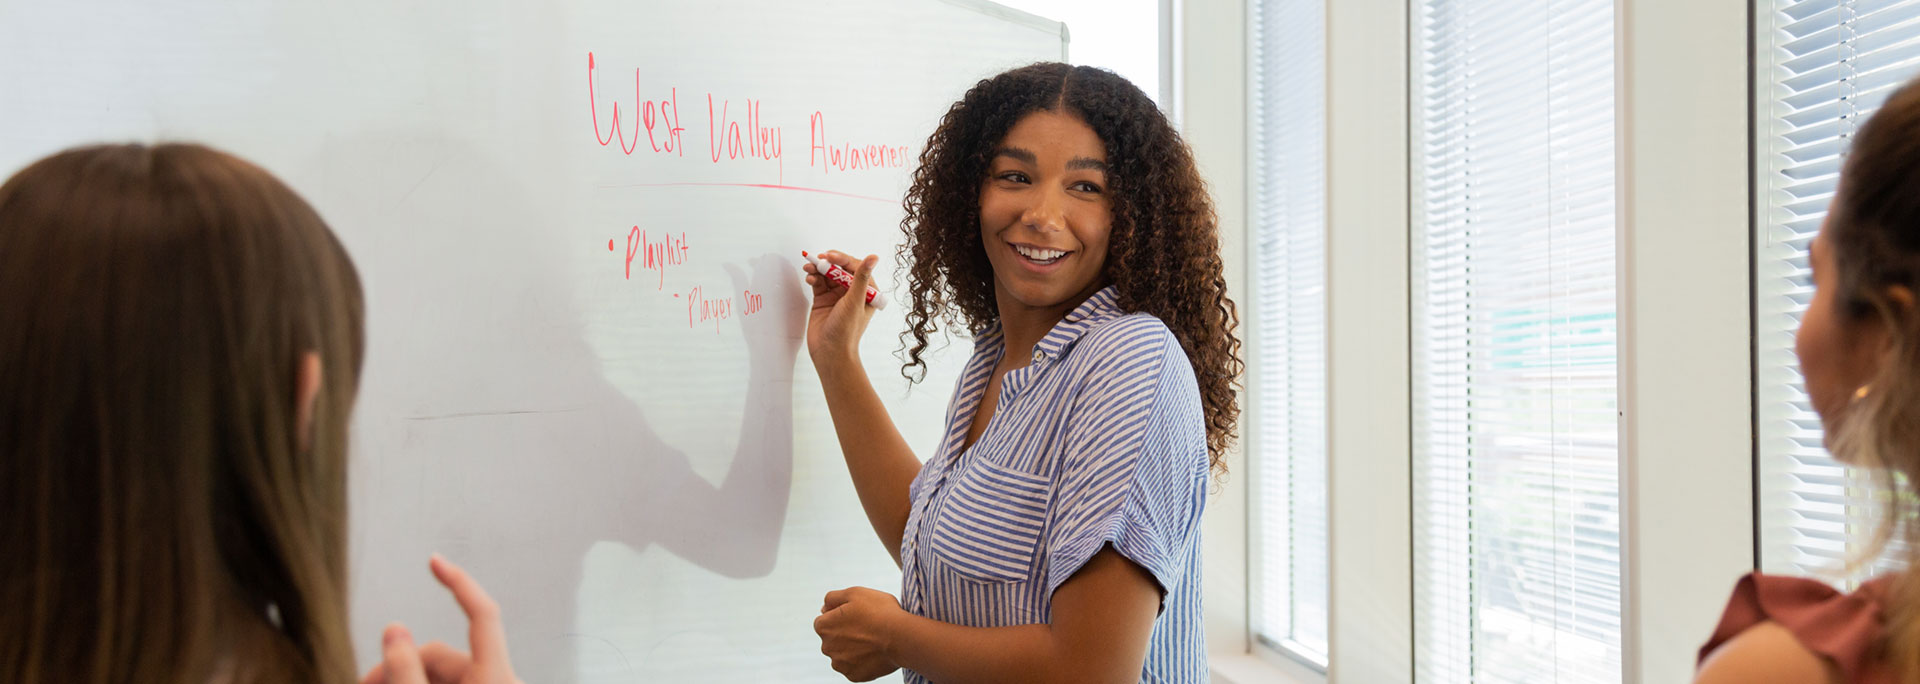 Public Relations Lab students strategize using a whiteboard.